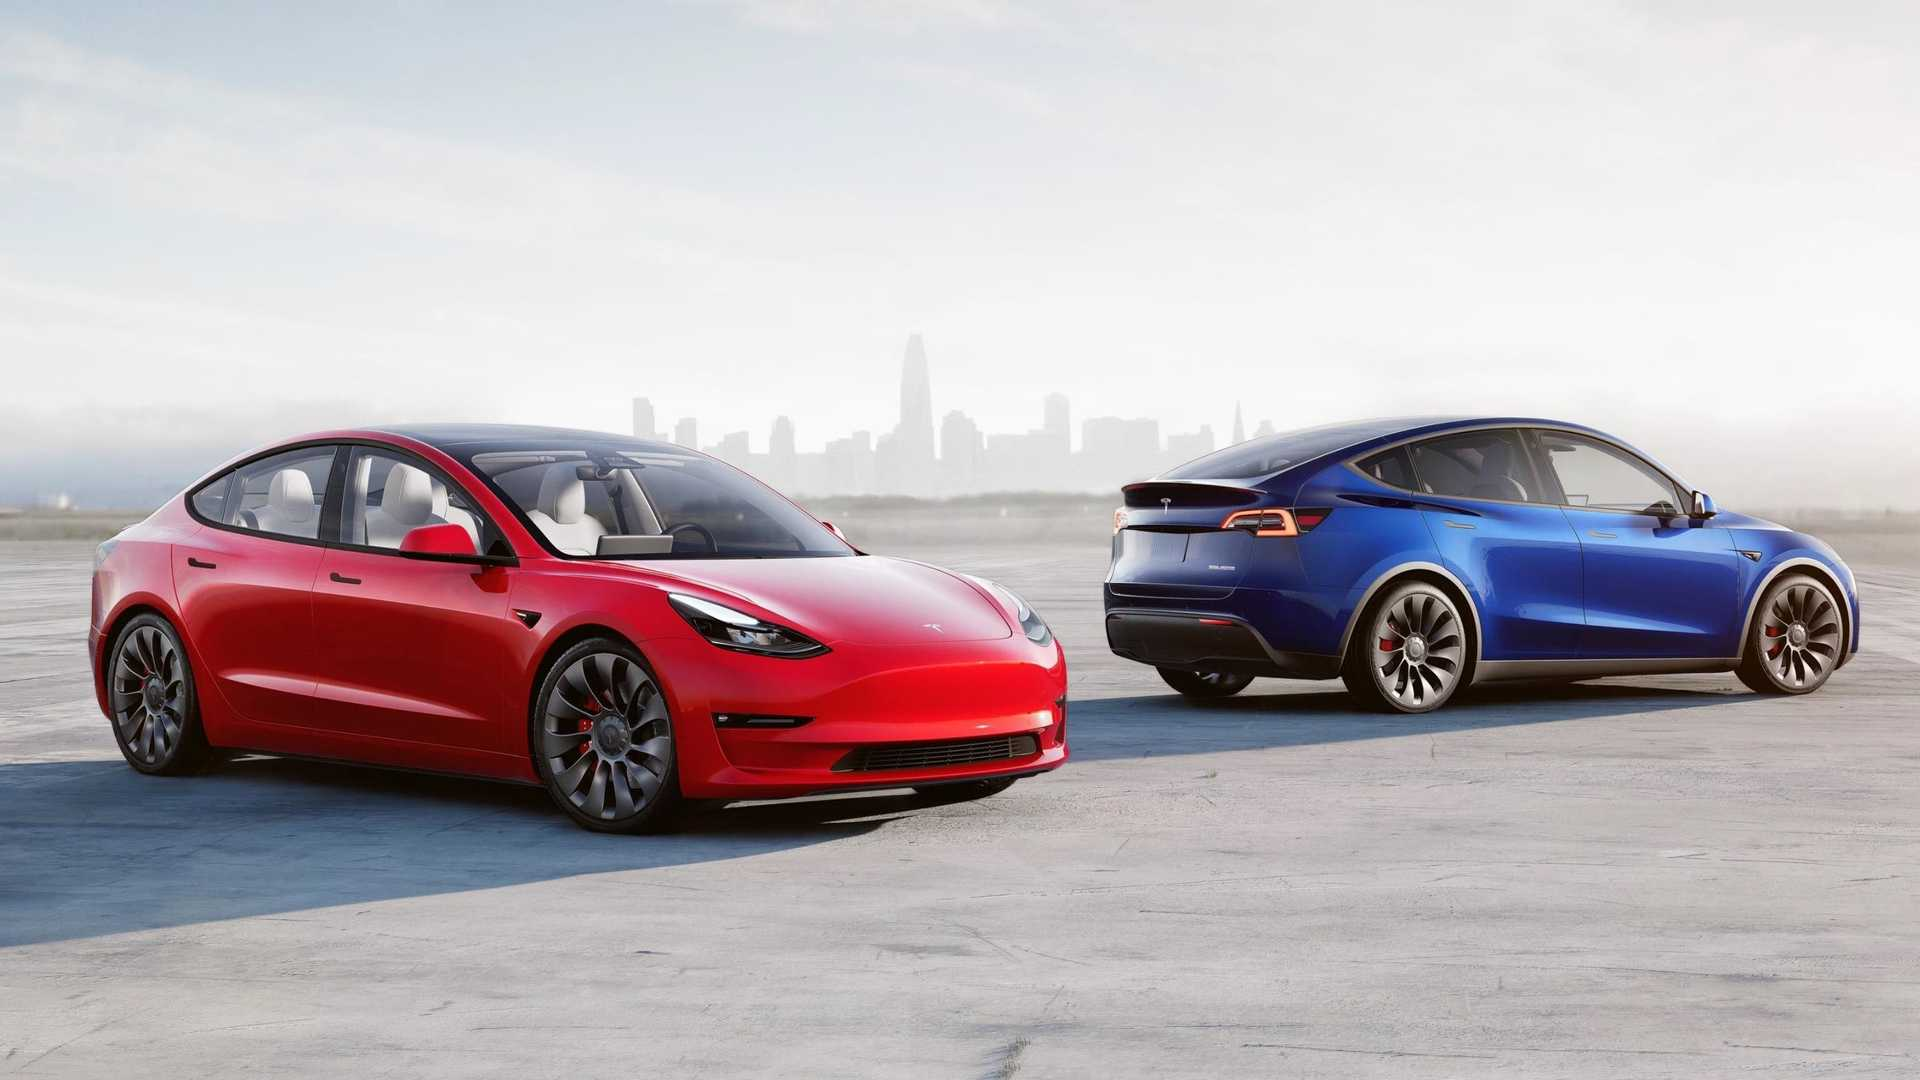 How Much Does A Tesla Cost? Model By Model Price Breakdown